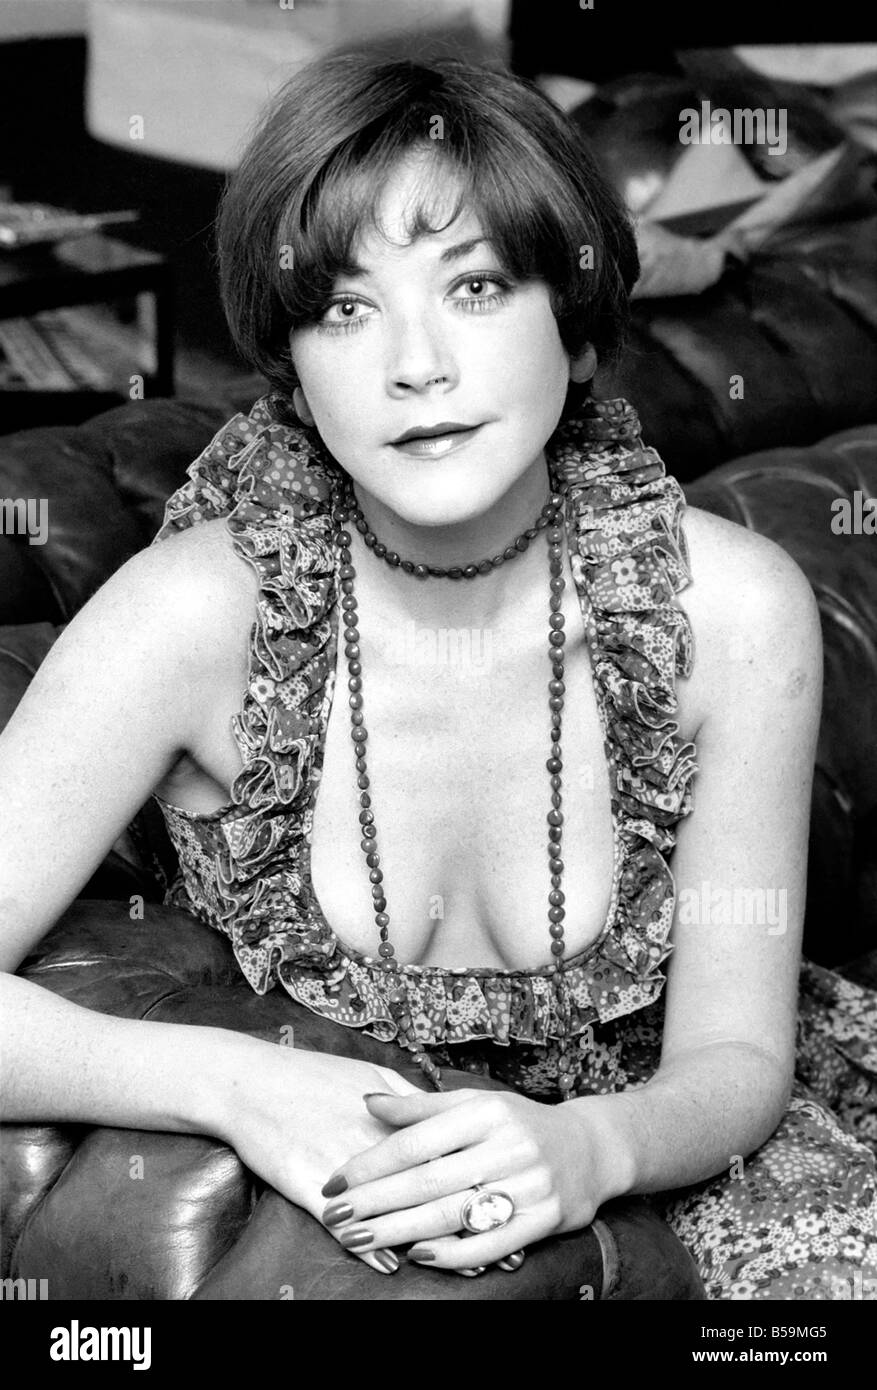 Avenger girl pictures of ex avenger girl linda thorson taken at avenger girl pictures of ex avenger girl linda thorson taken at her regents park flat april 1975 75 2234 001 thecheapjerseys Images